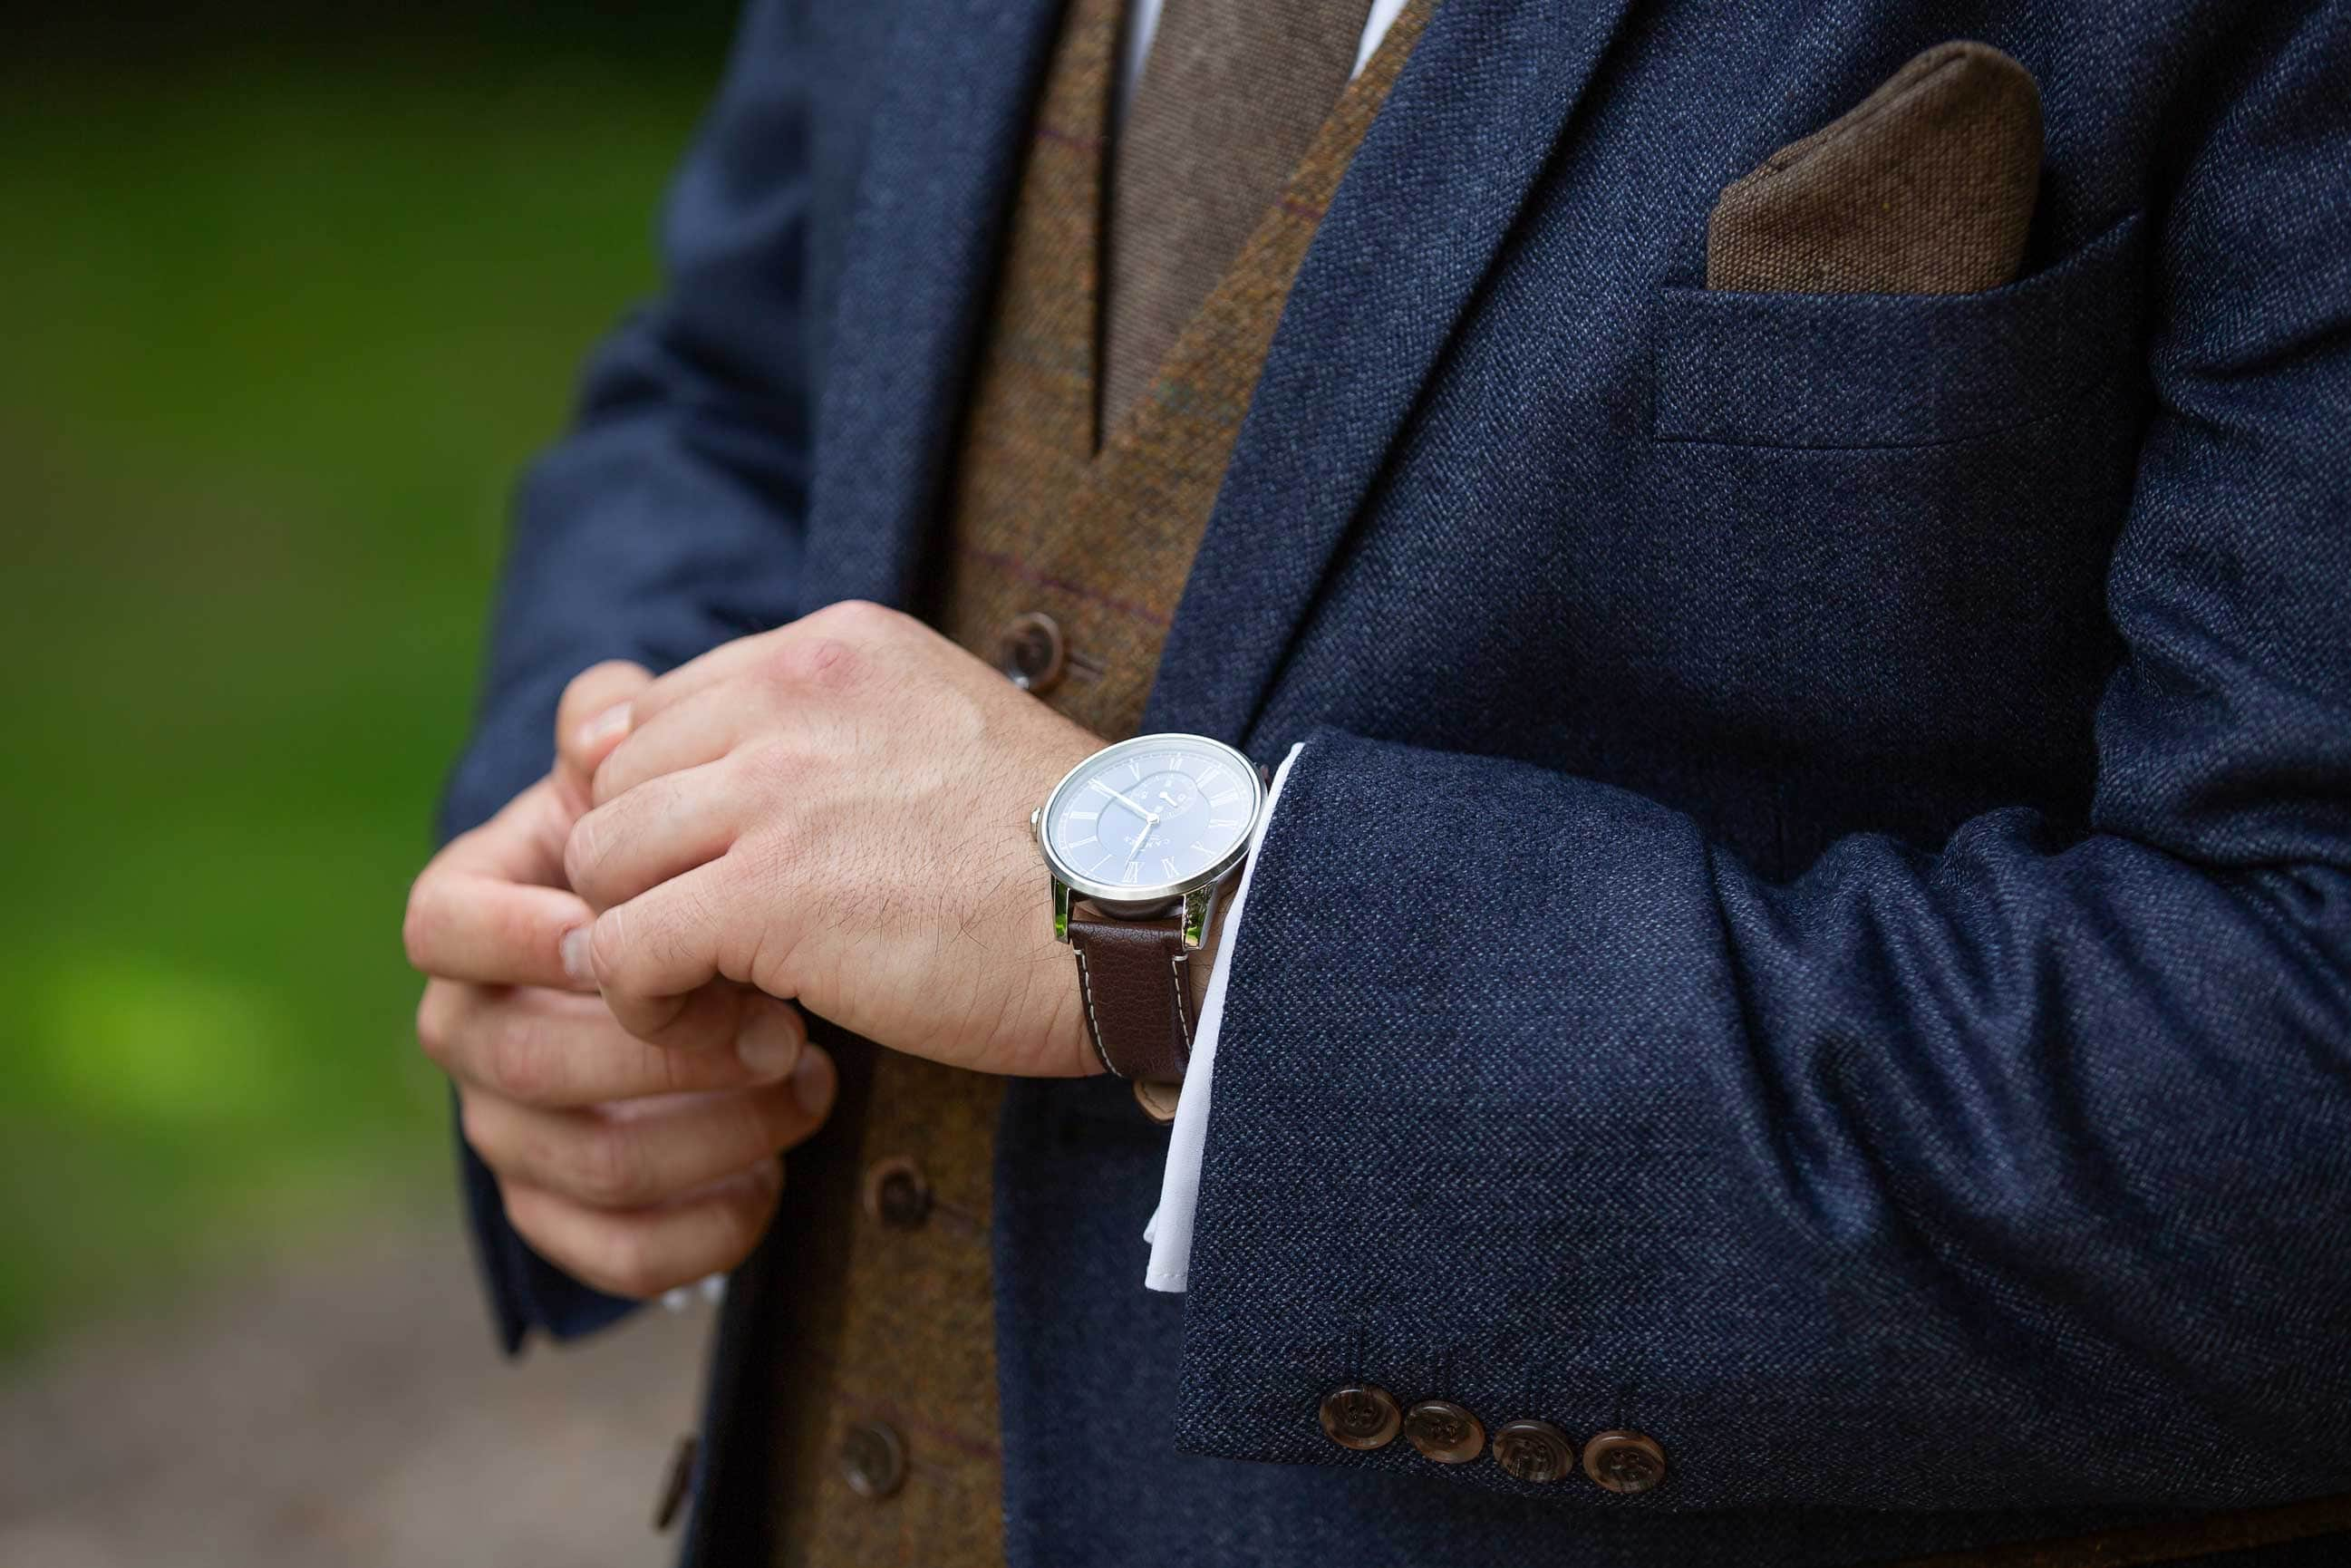 Photo of the grooms watch